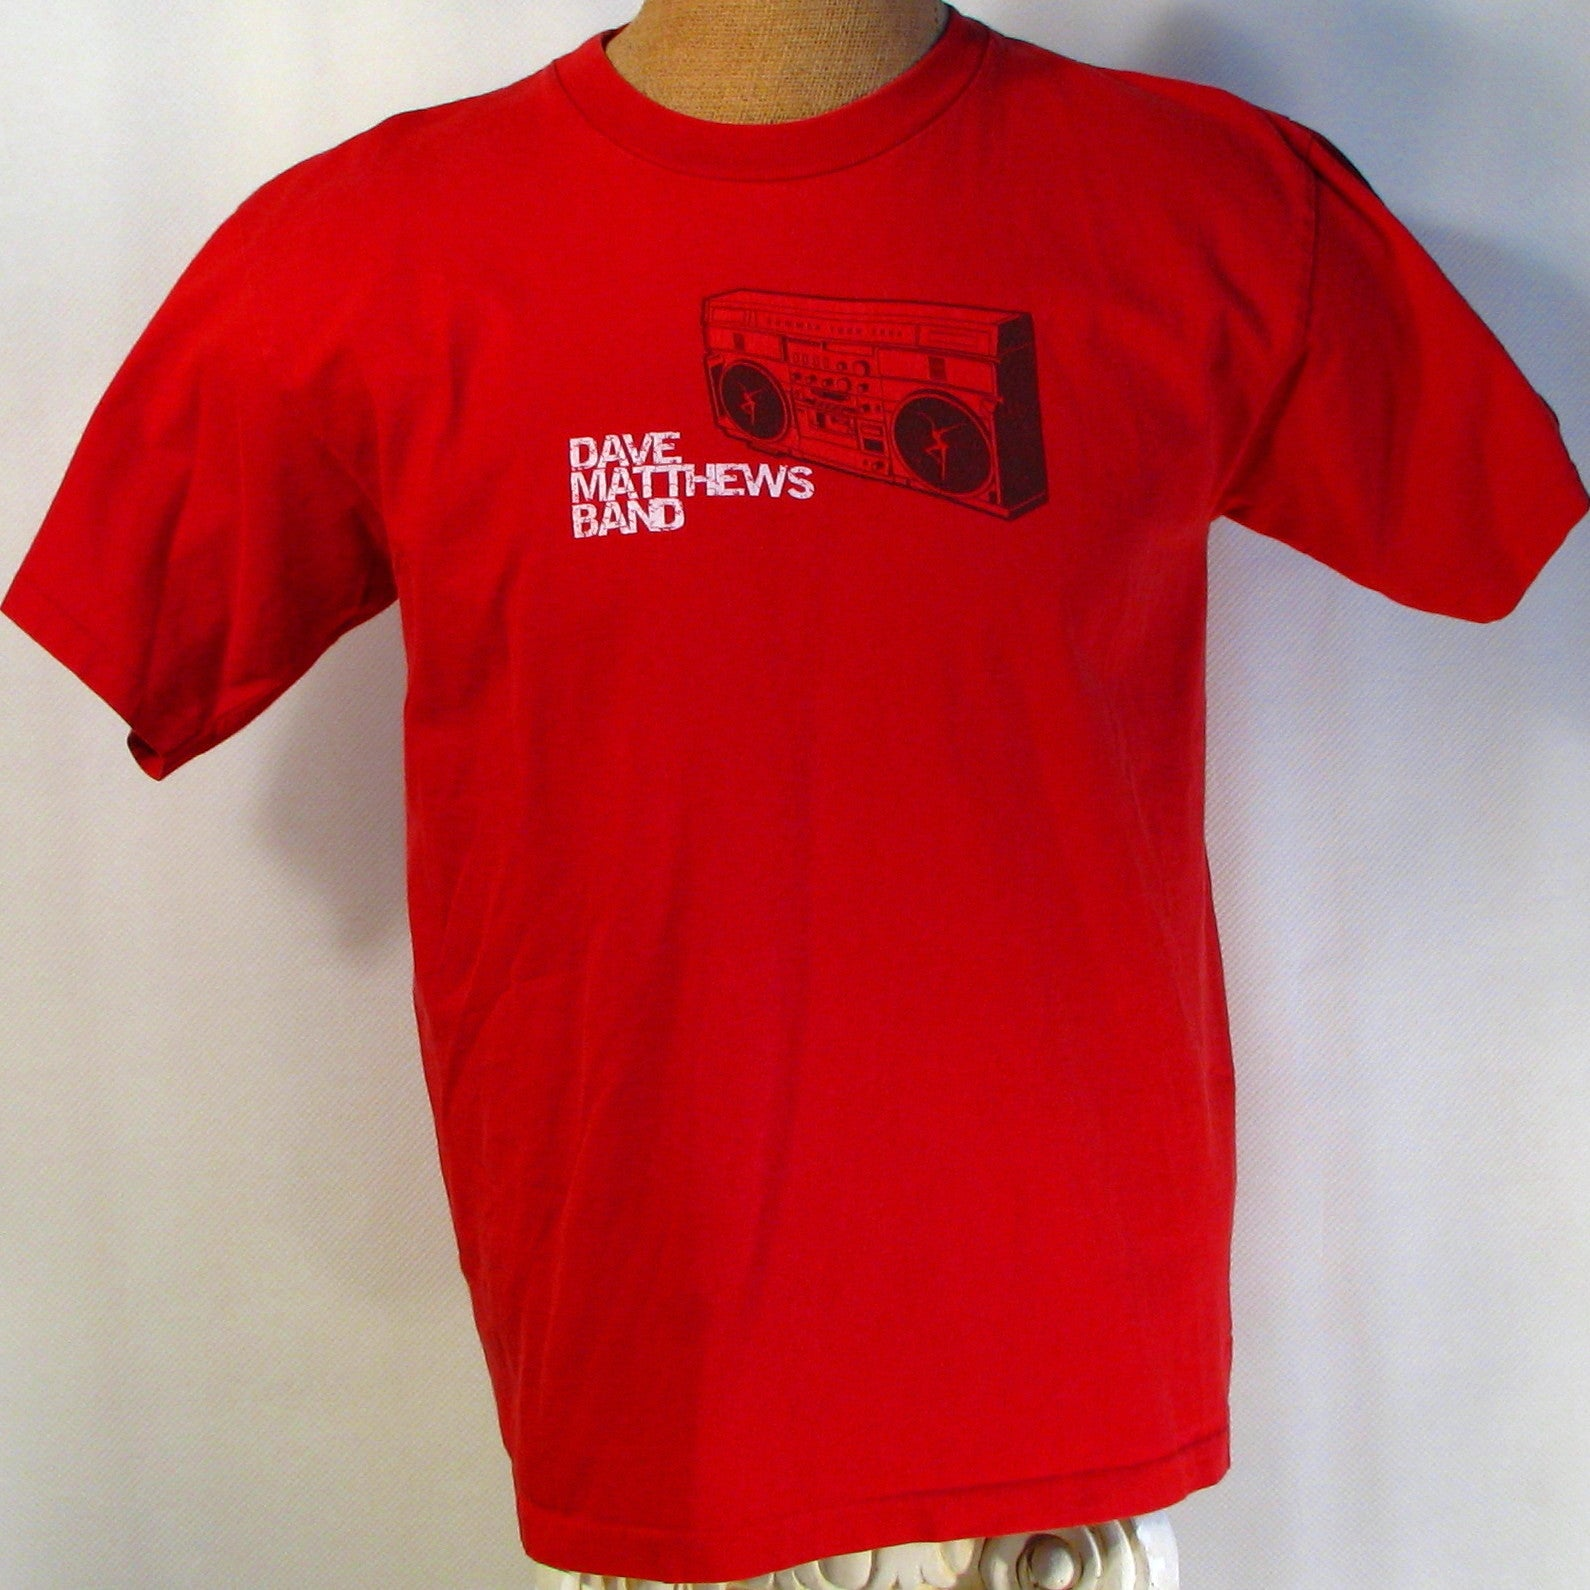 Dave Mathews Band T-Shirt